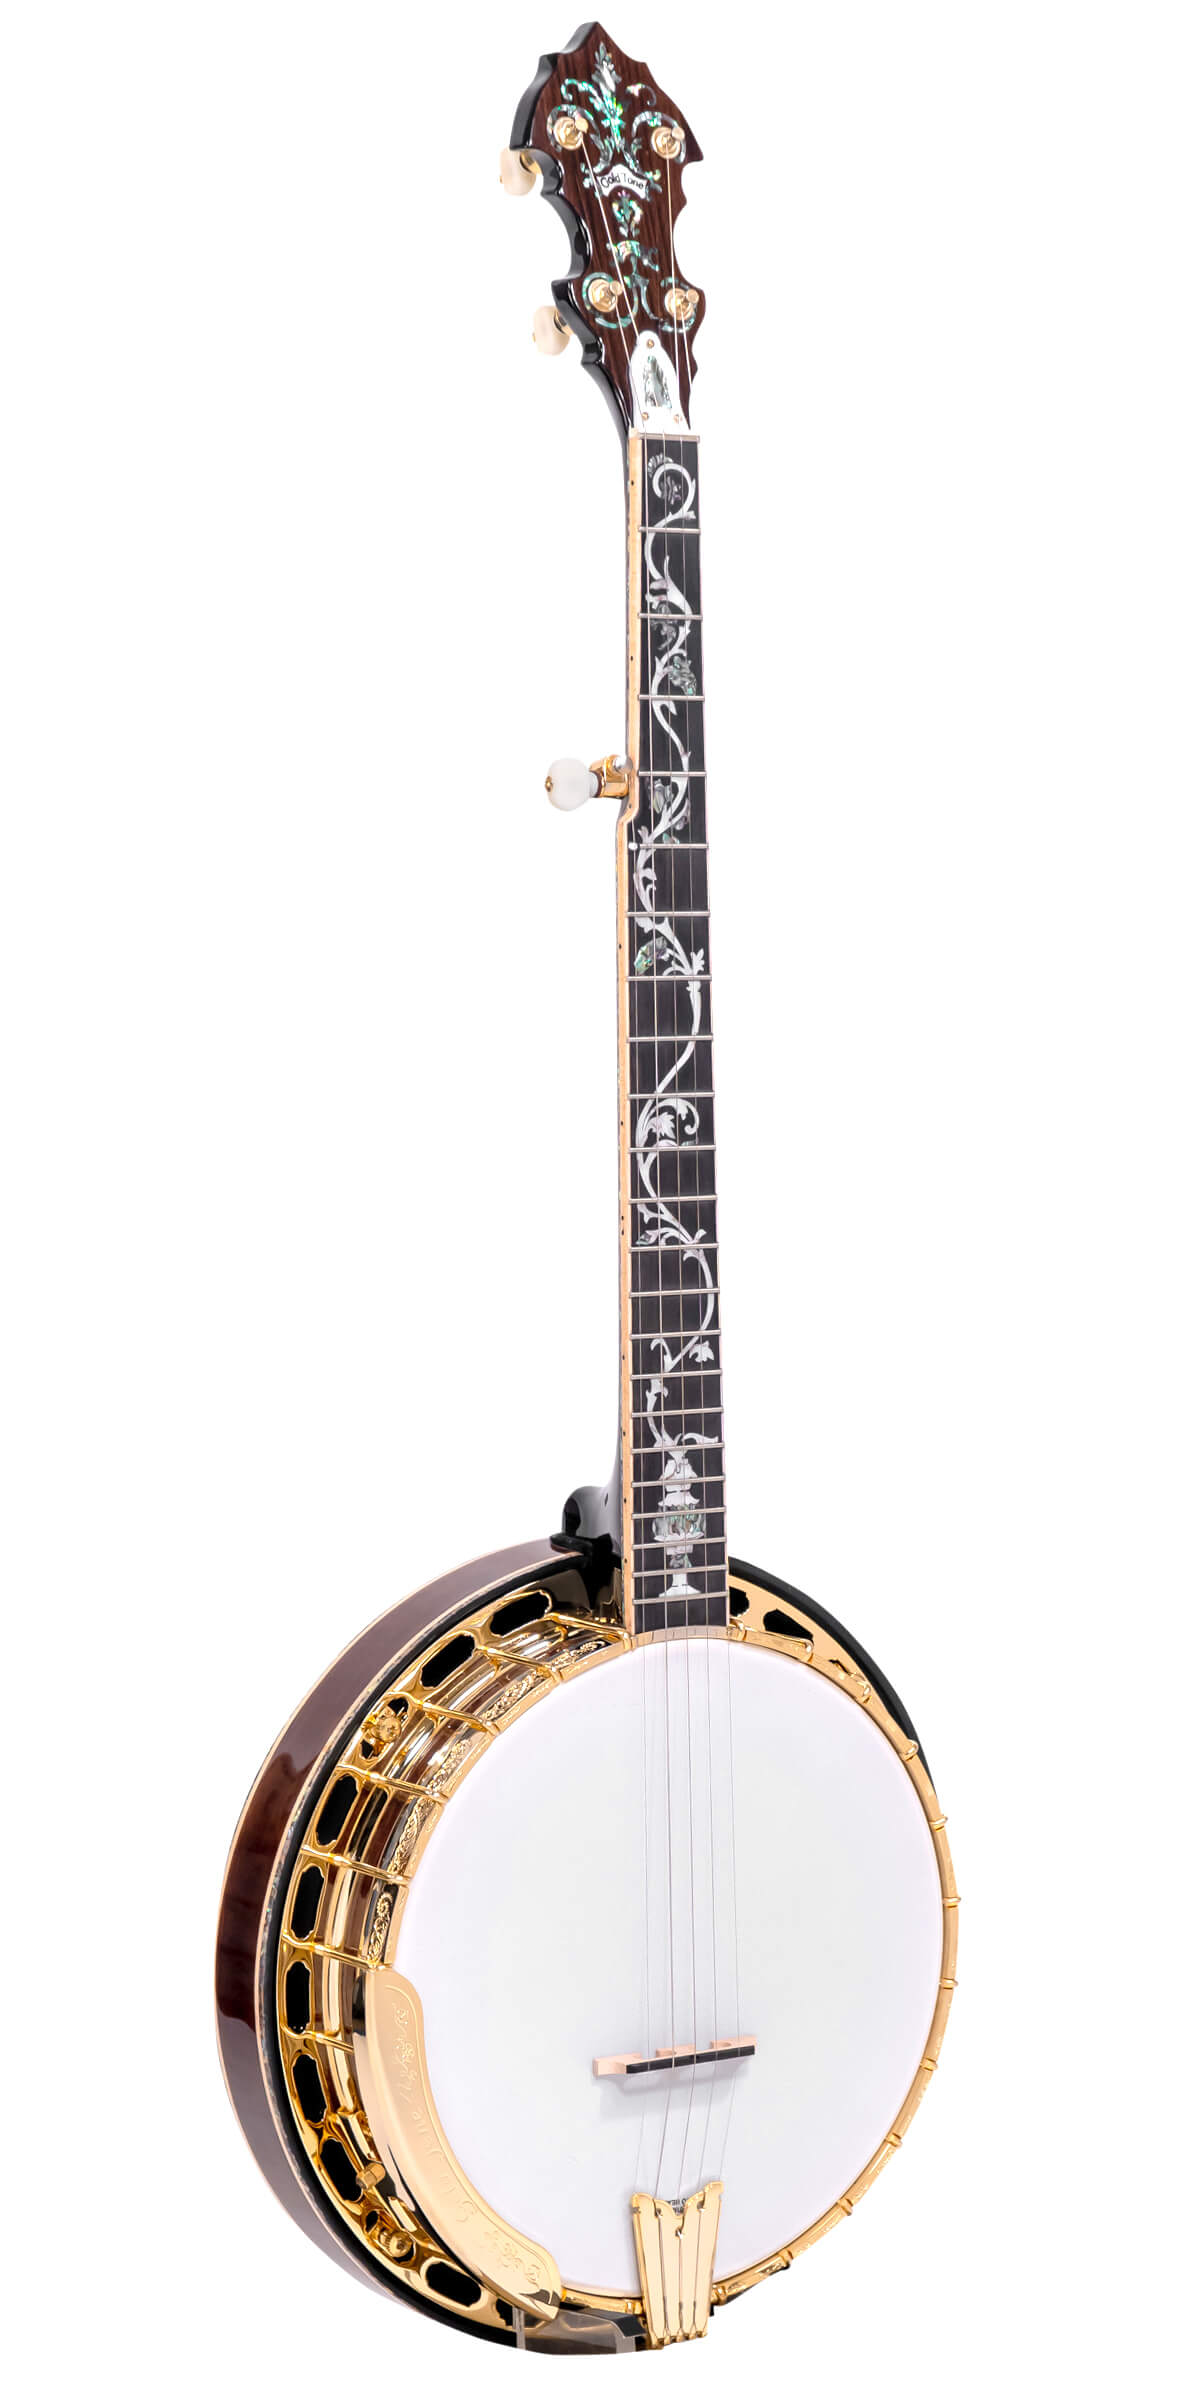 OB-300: Orange Blossom Banjo